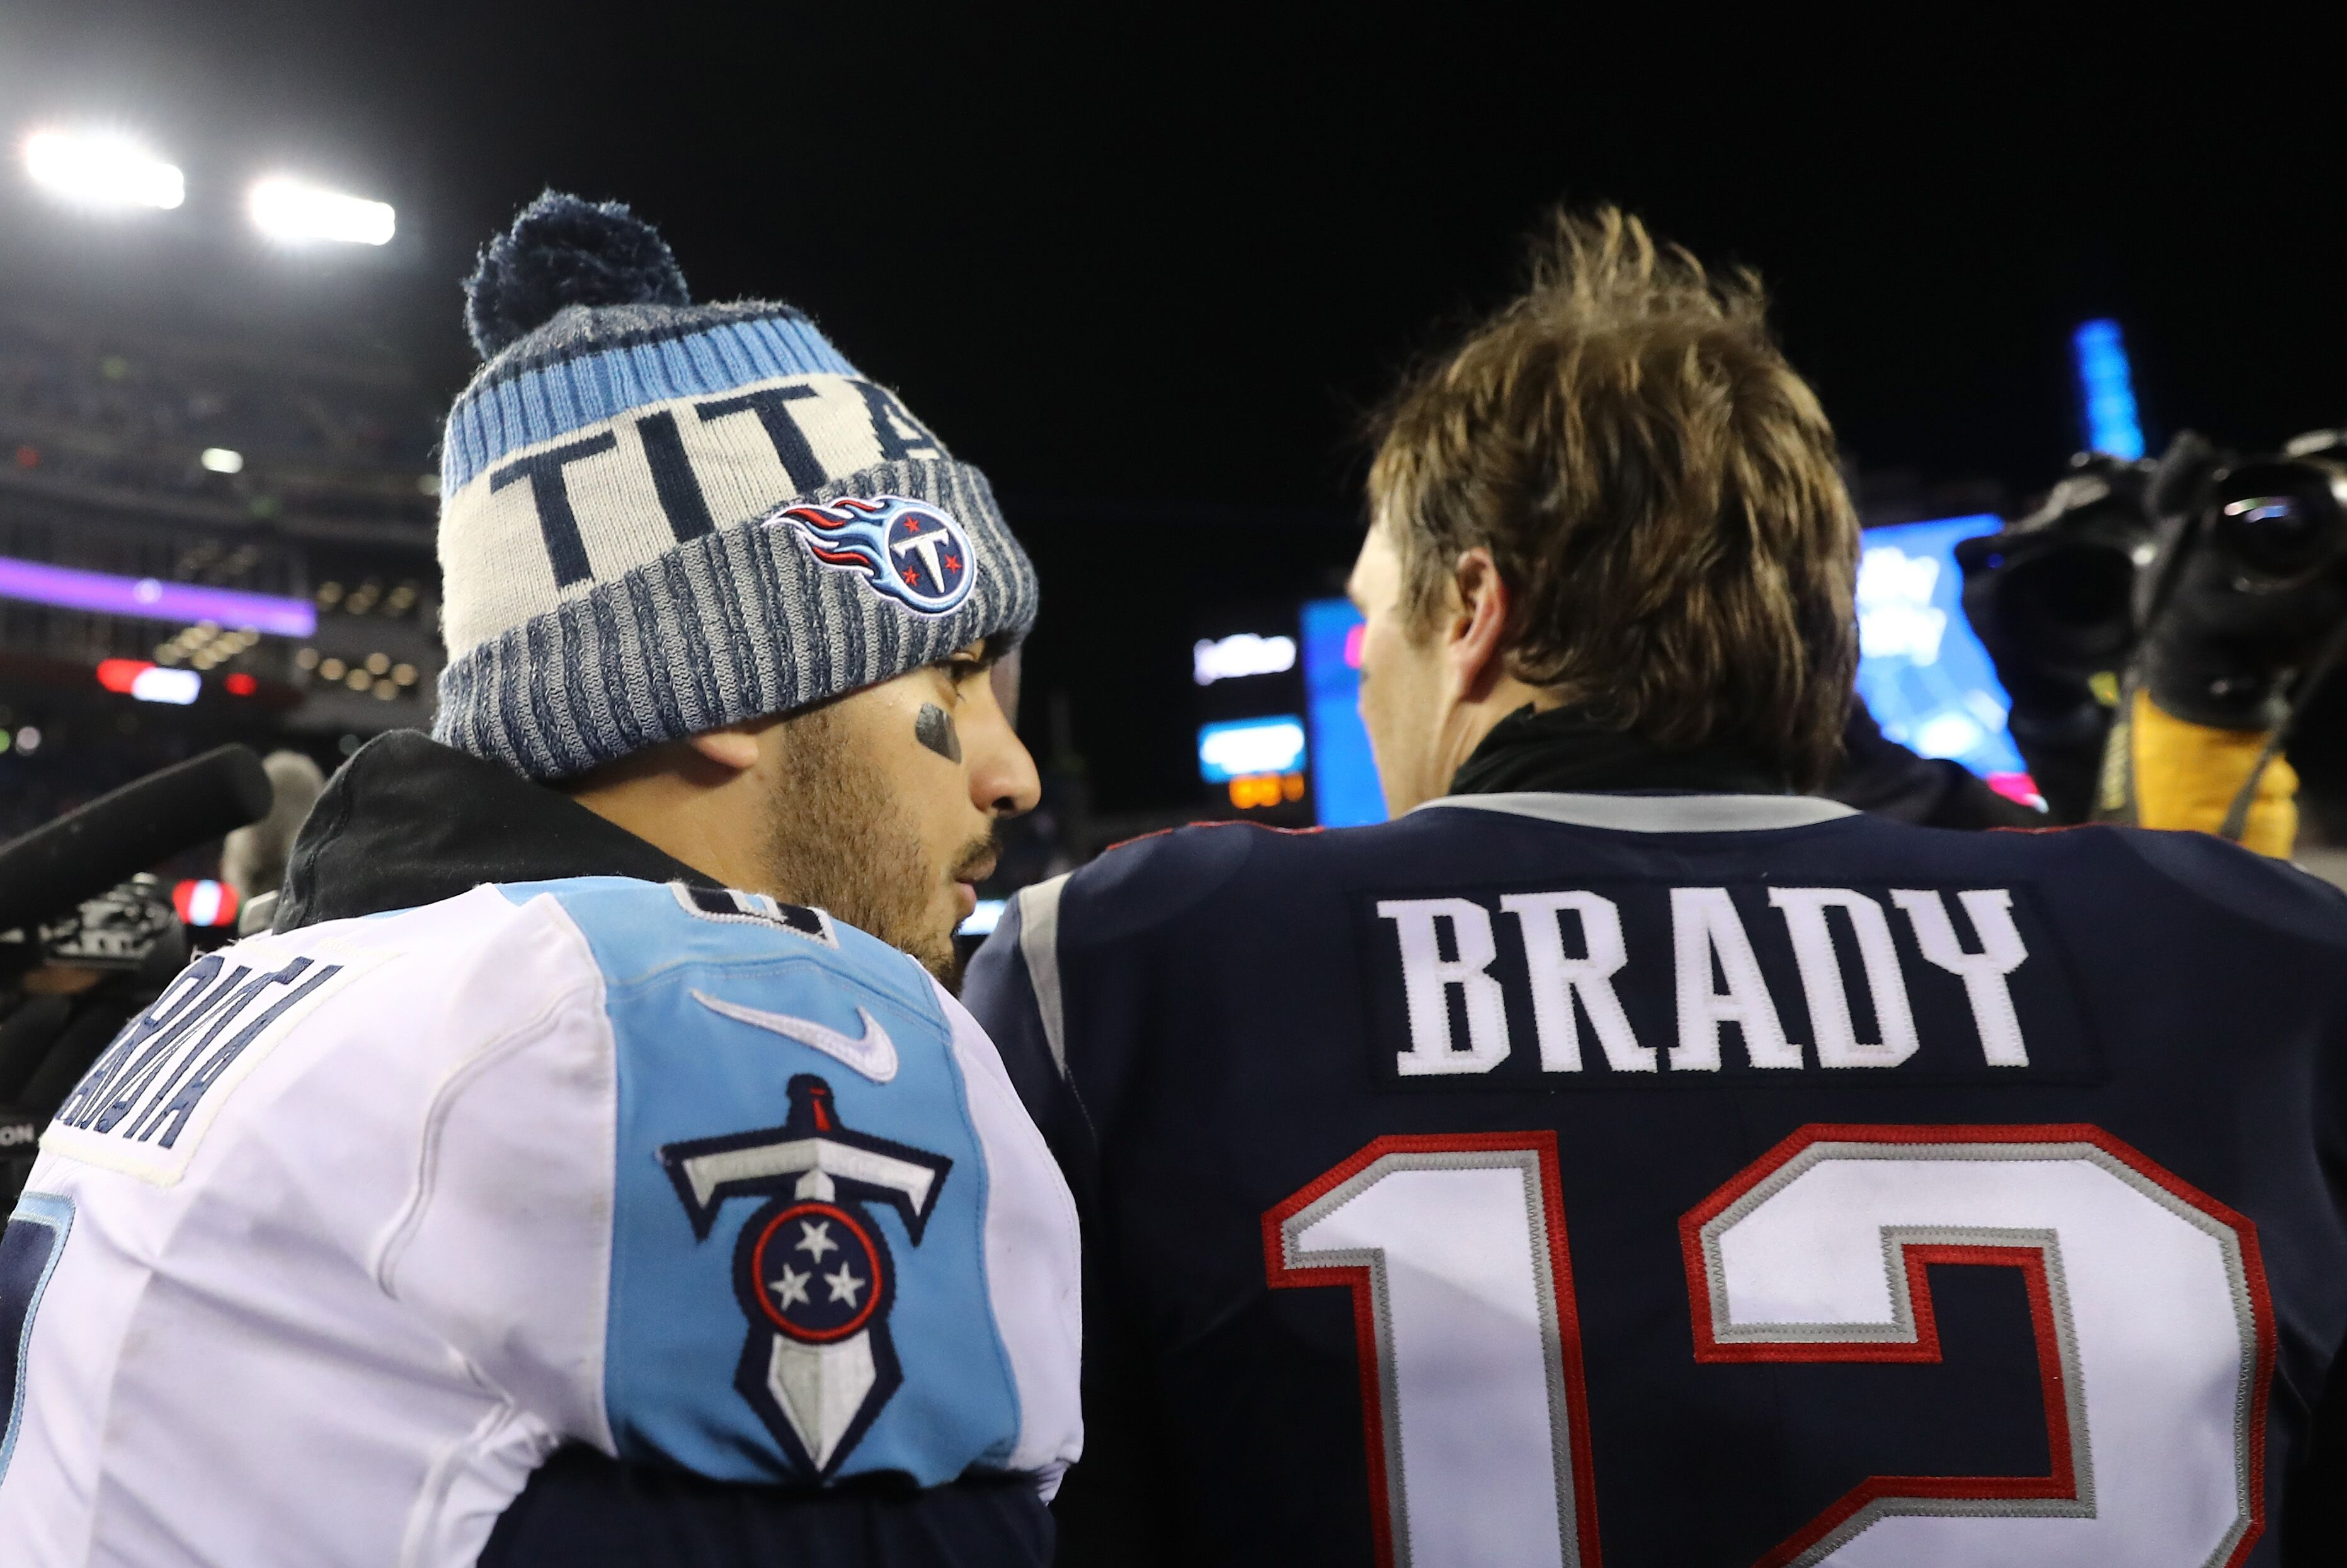 904660268-divisional-round-tennessee-titans-v-new-england-patriots.jpg